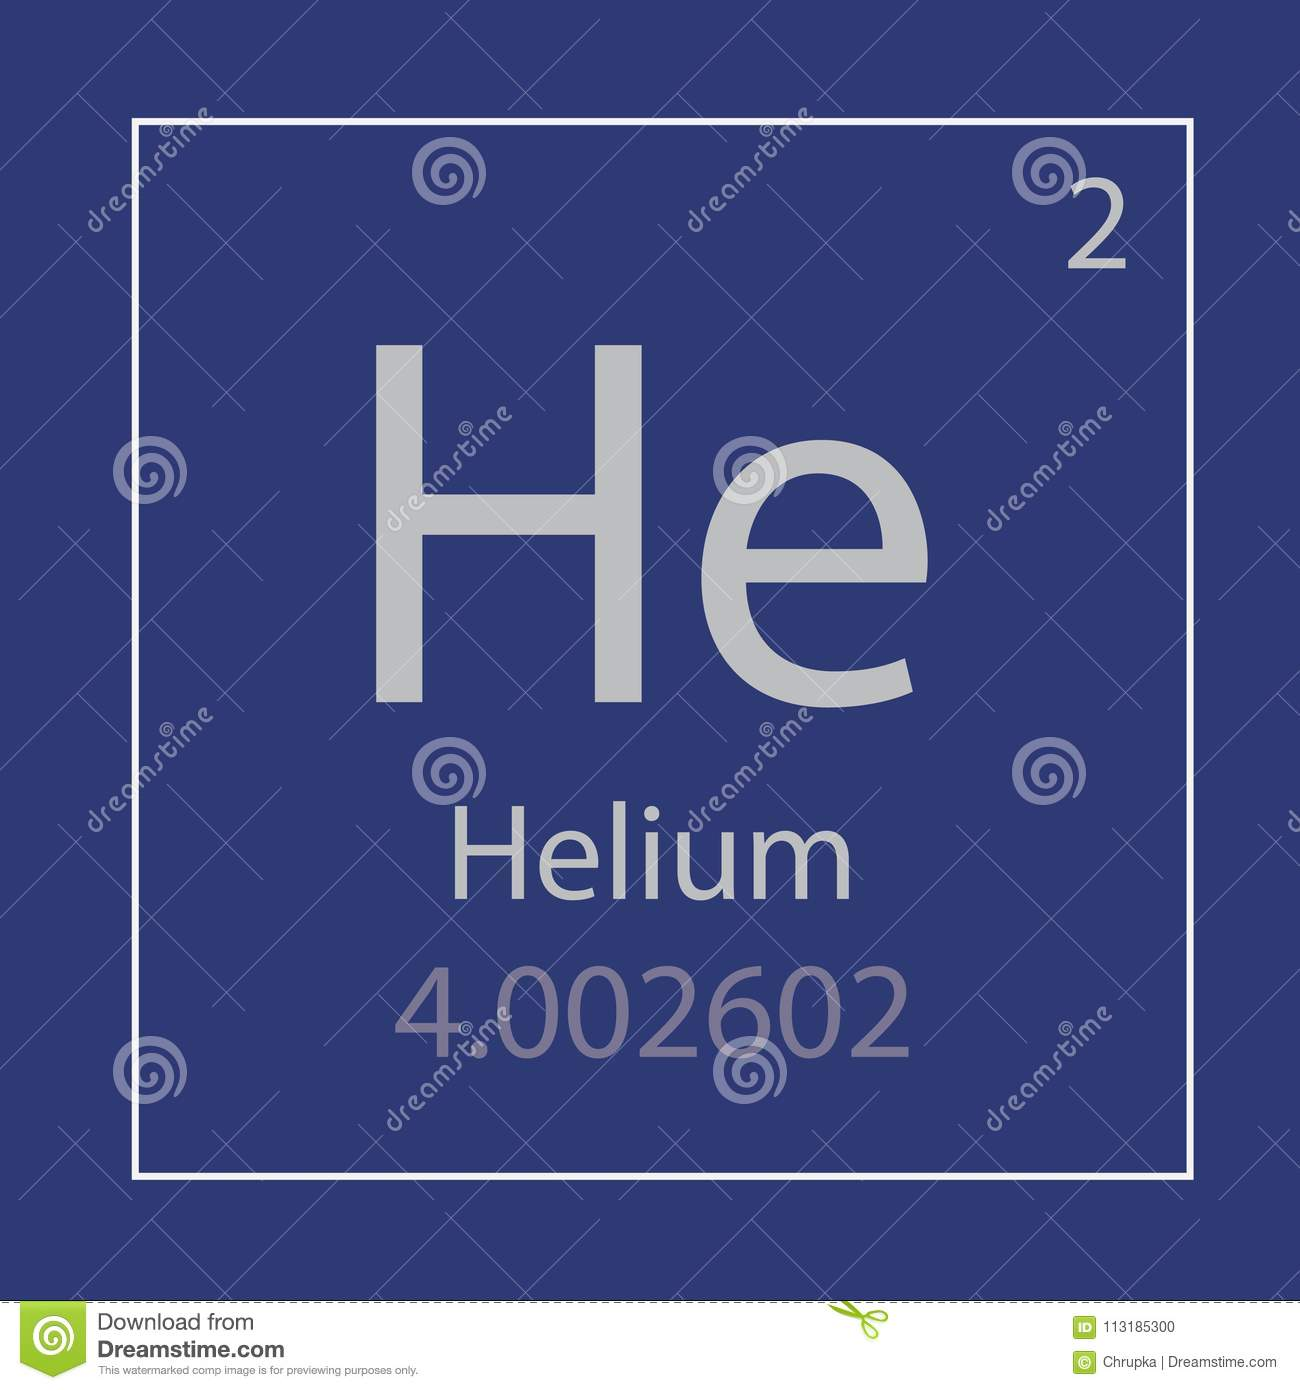 Helium He Chemical Element Icon Stock Vector Illustration Of